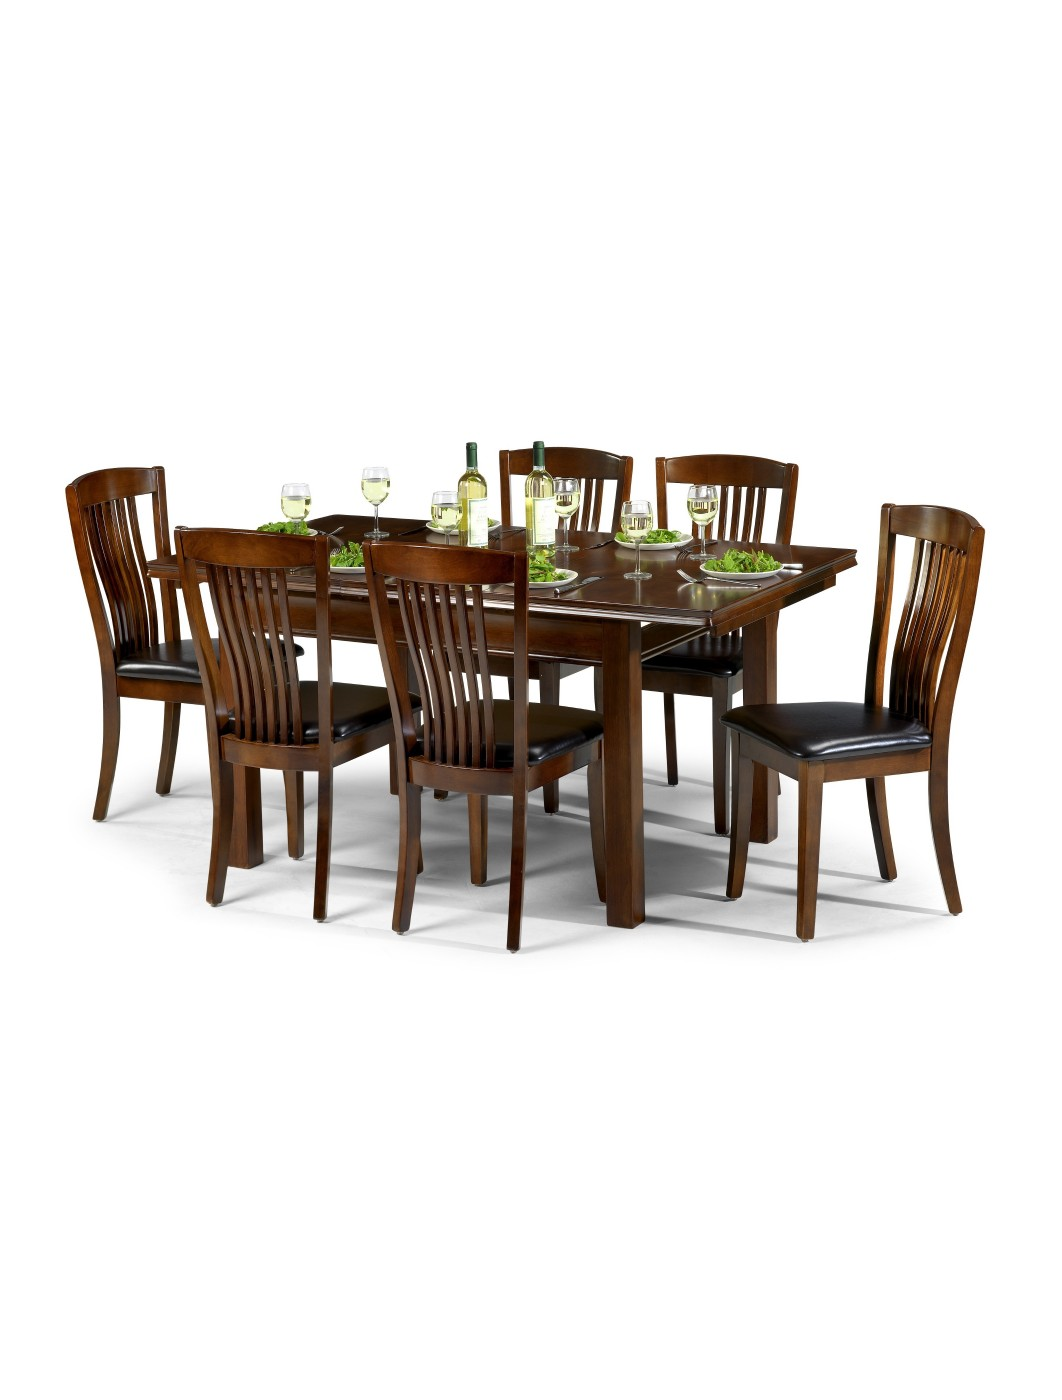 Wonderful image of Canterbury Dining Julian Bowen Canterbury Dining Set Bowen Canterbury  with #4C6924 color and 1062x1400 pixels